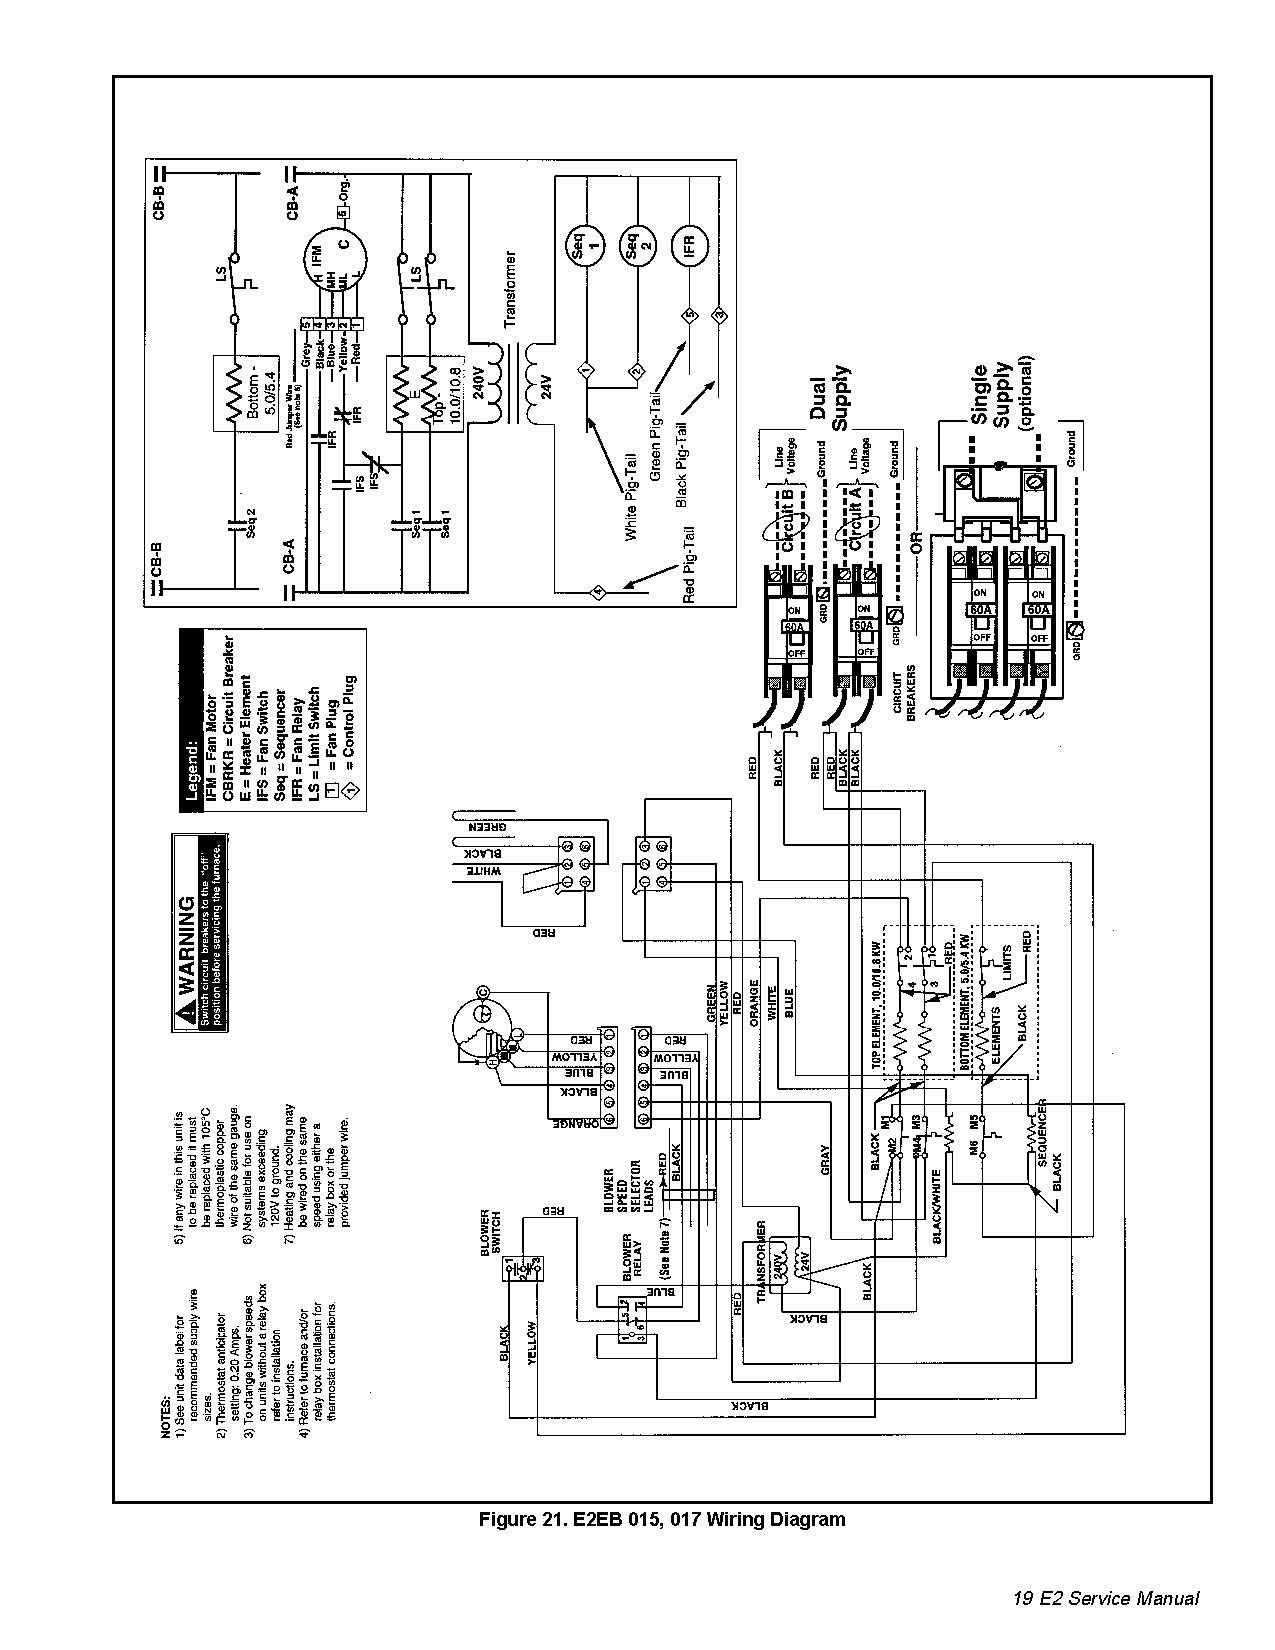 miller electric furnace wiring diagram Collection-Wiring Diagram nordyne Electric Furnace New nordyne Wiring Diagram Electric Furnace with Electrical for 13-r